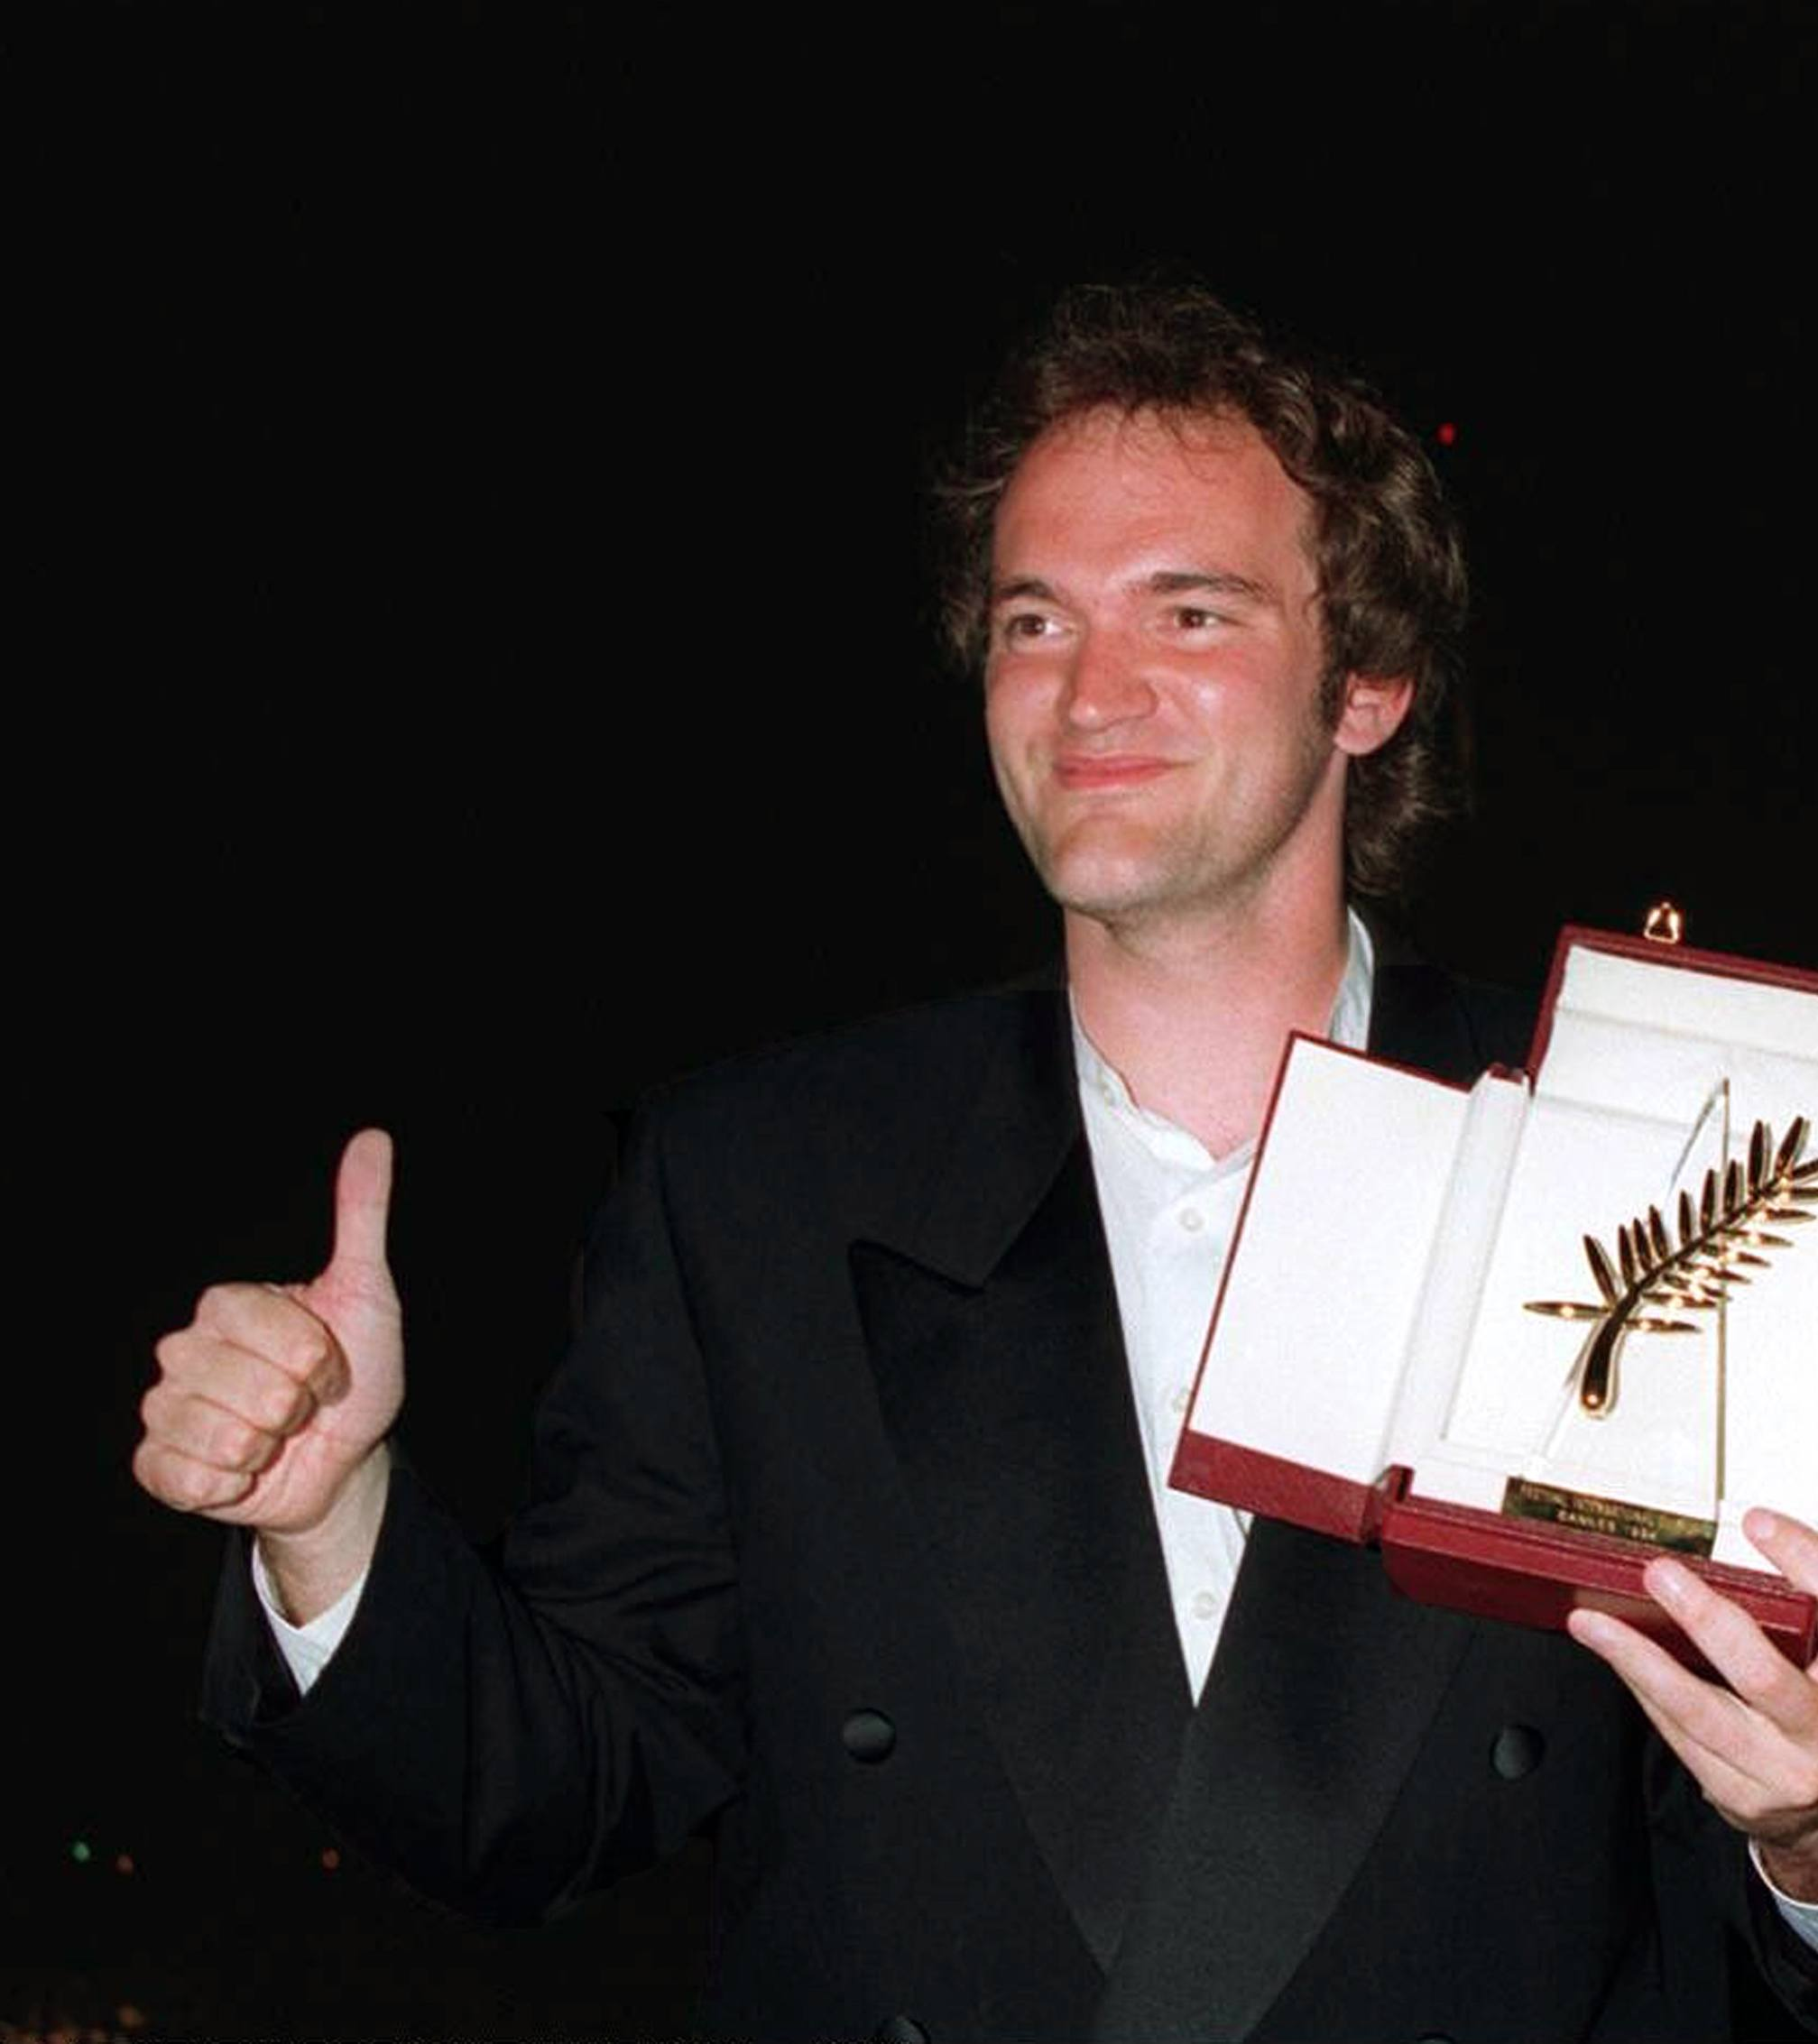 Cannes 1994 Quentin Tarantino Pulp Fiction 25 Things You Never Knew About Pulp Fiction